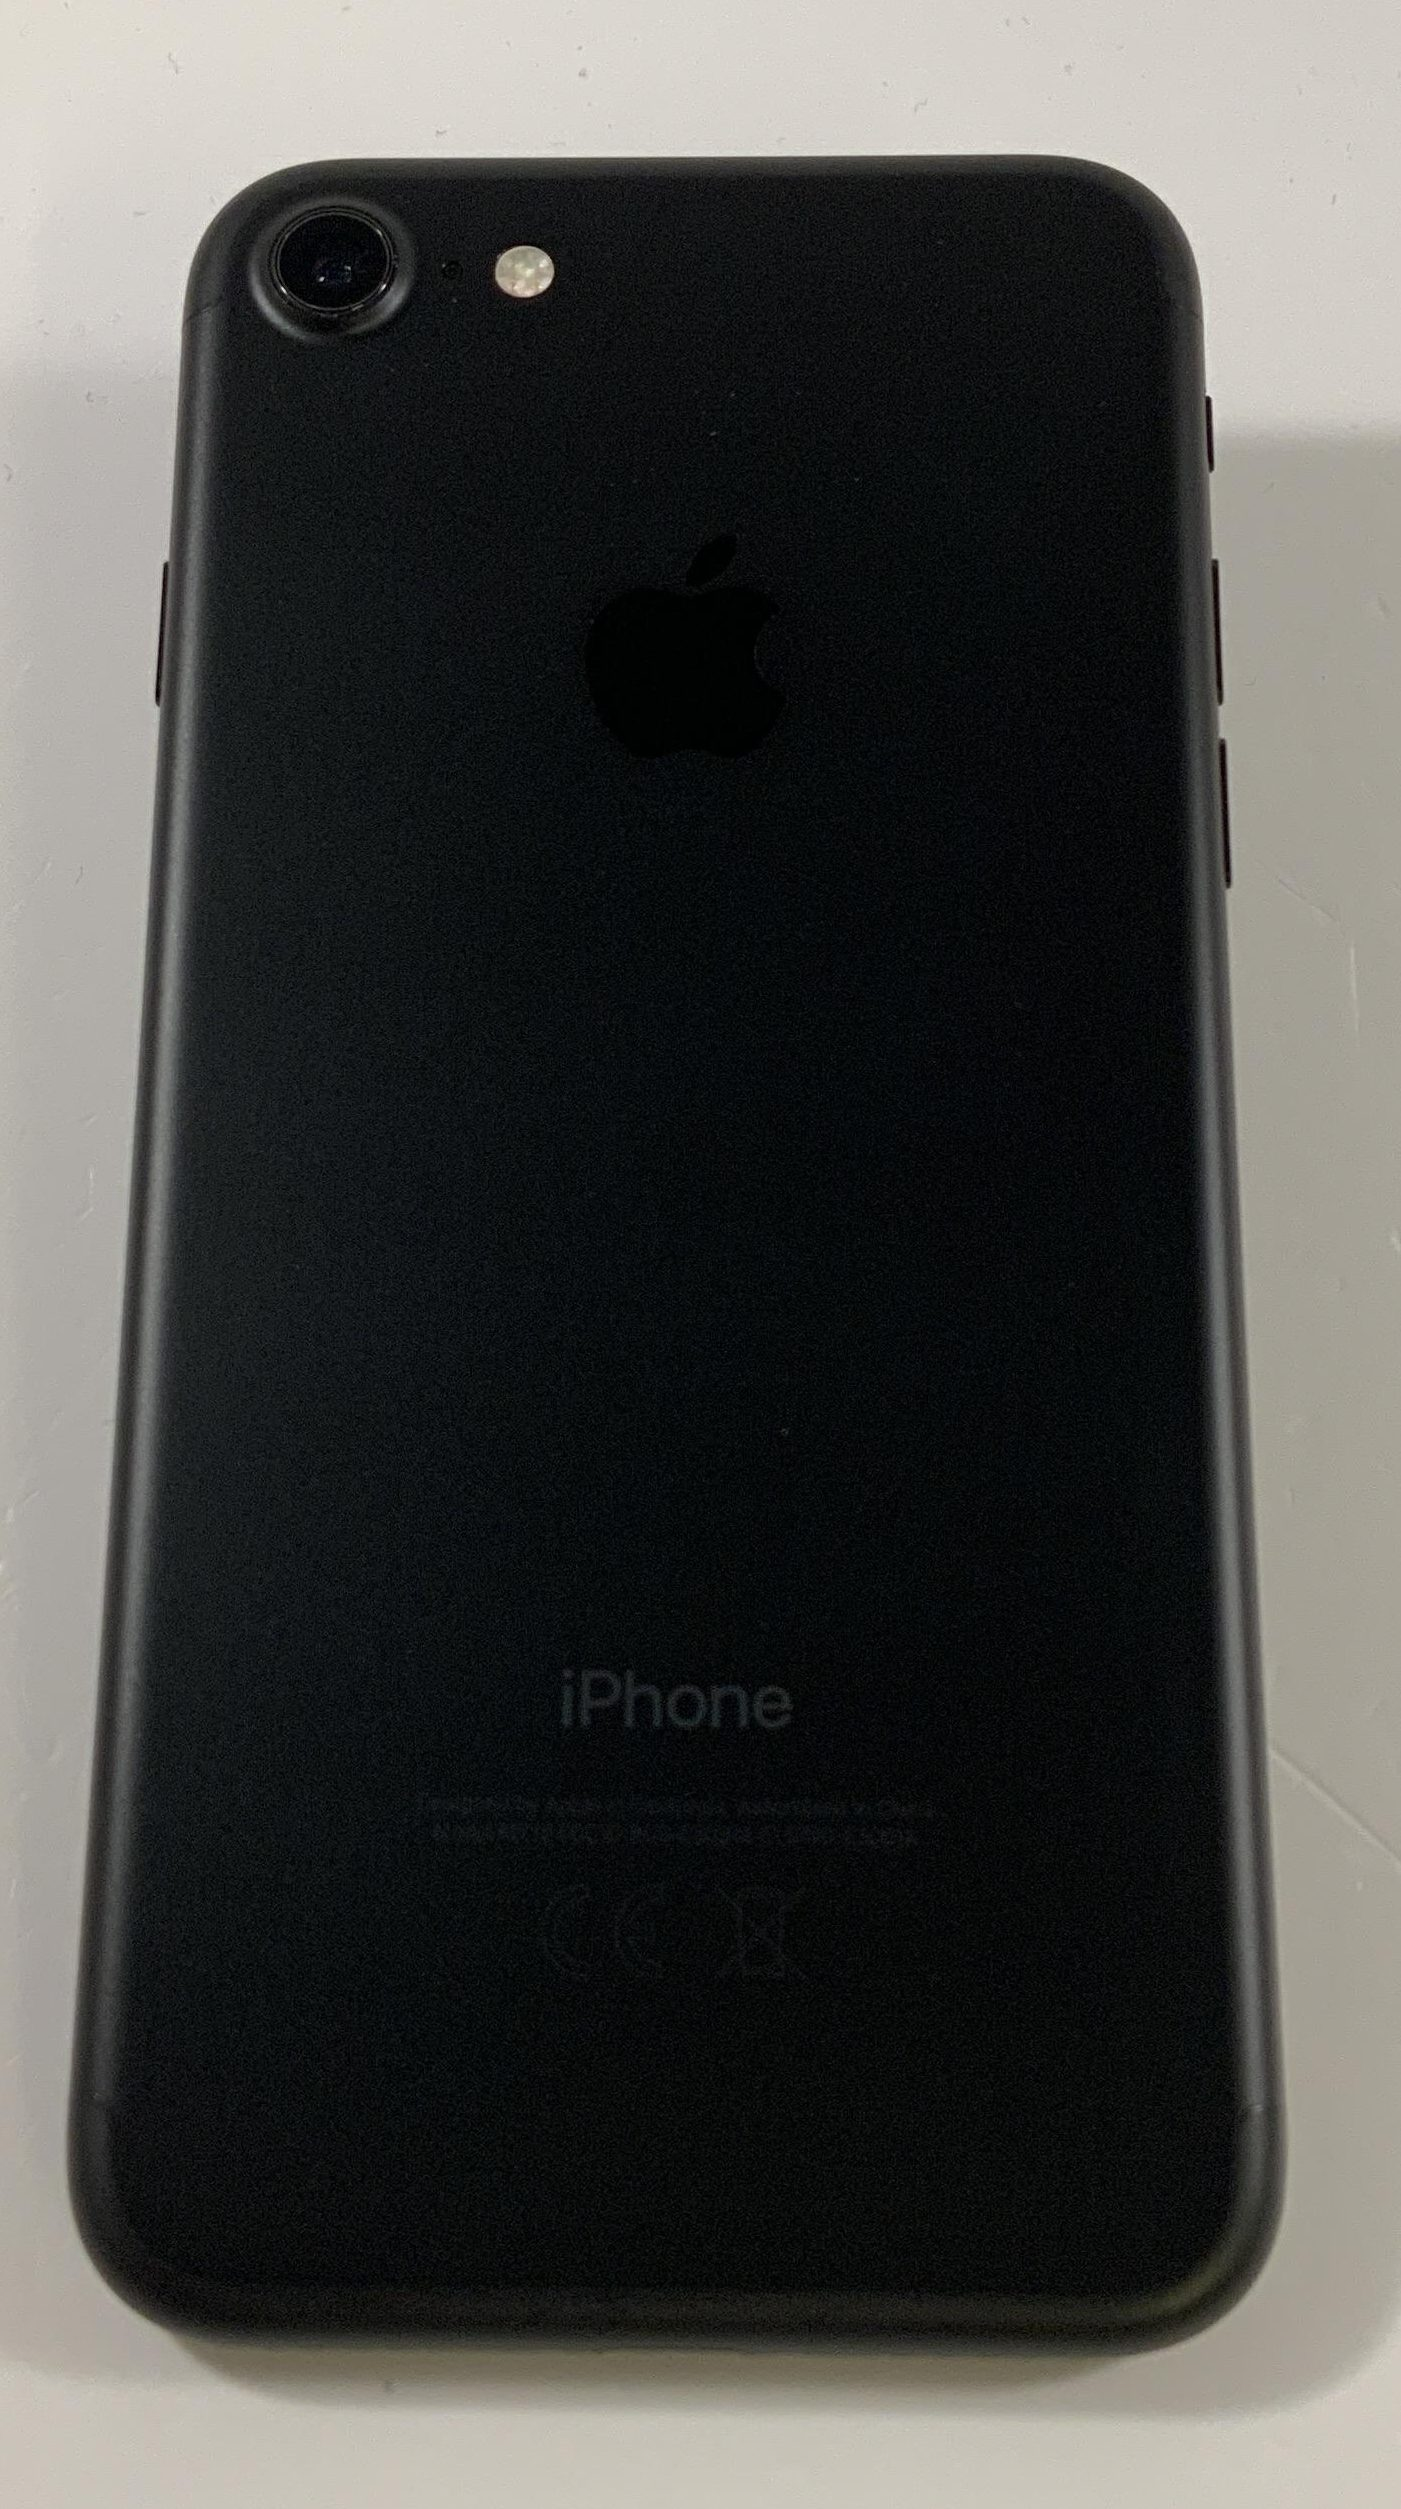 iPhone 7 32GB, 32GB, Black, Afbeelding 2